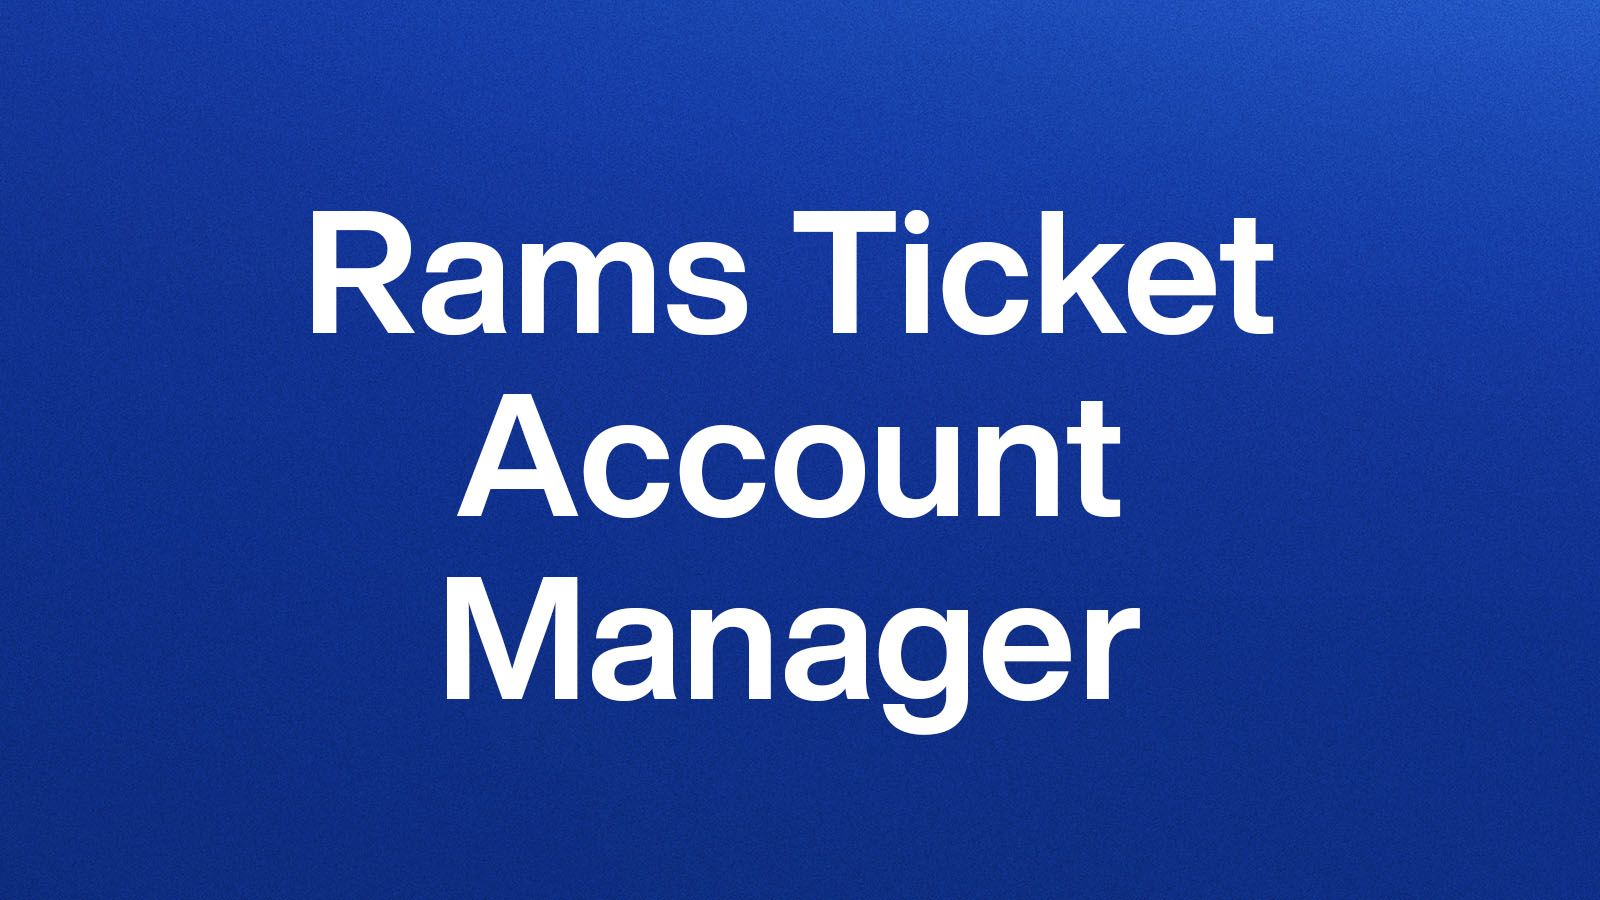 STM-info-updated-rams-am